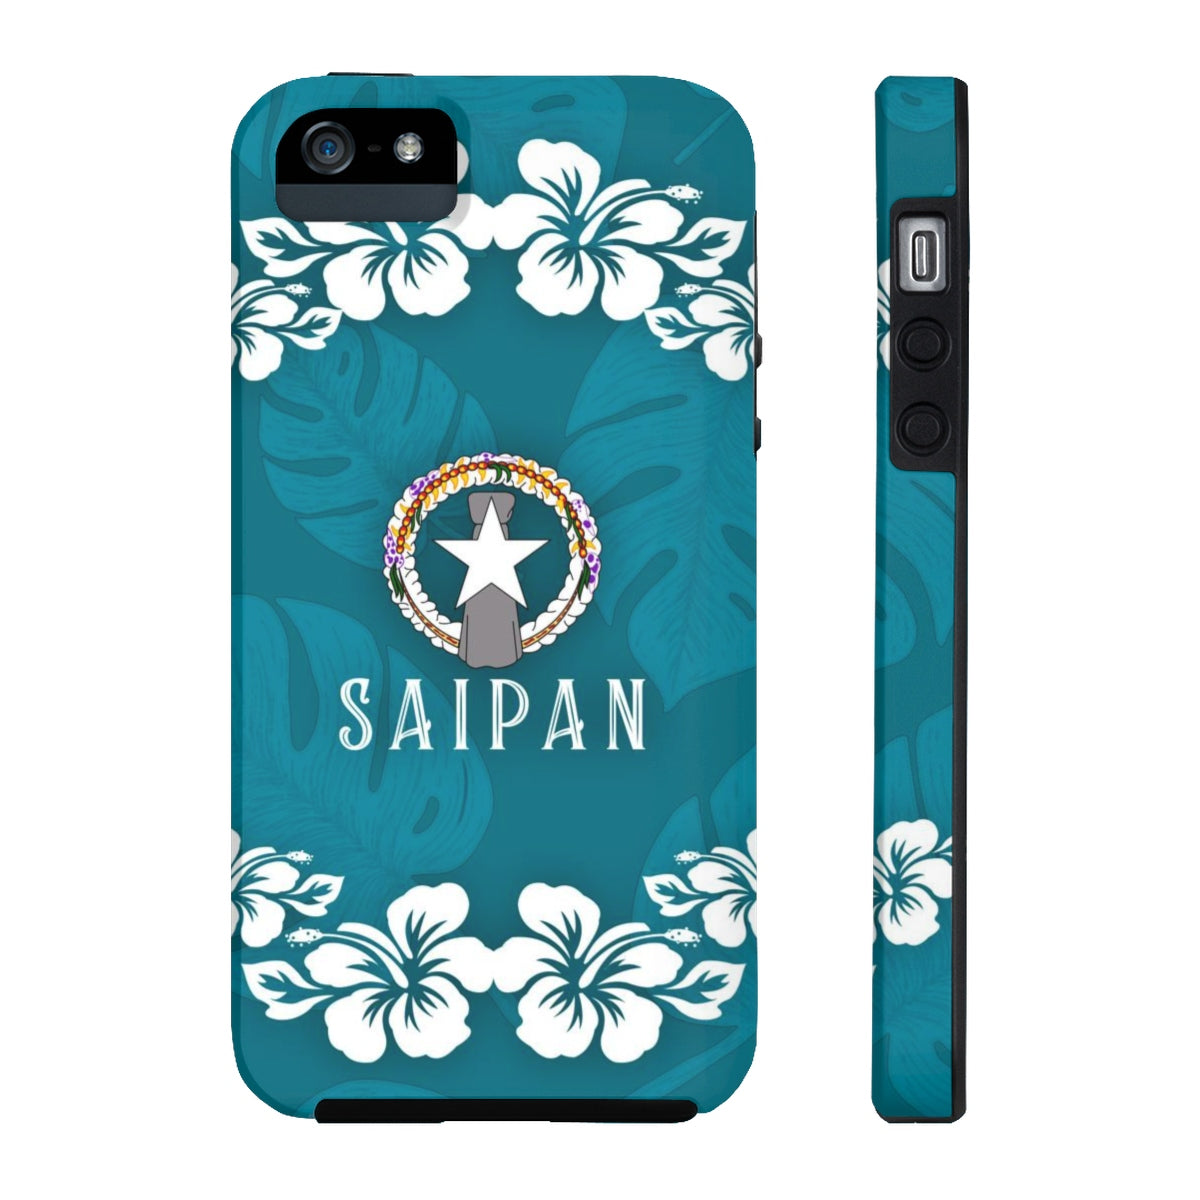 Saipan CNMI Teal Blue Hibiscus Tough Phone Case